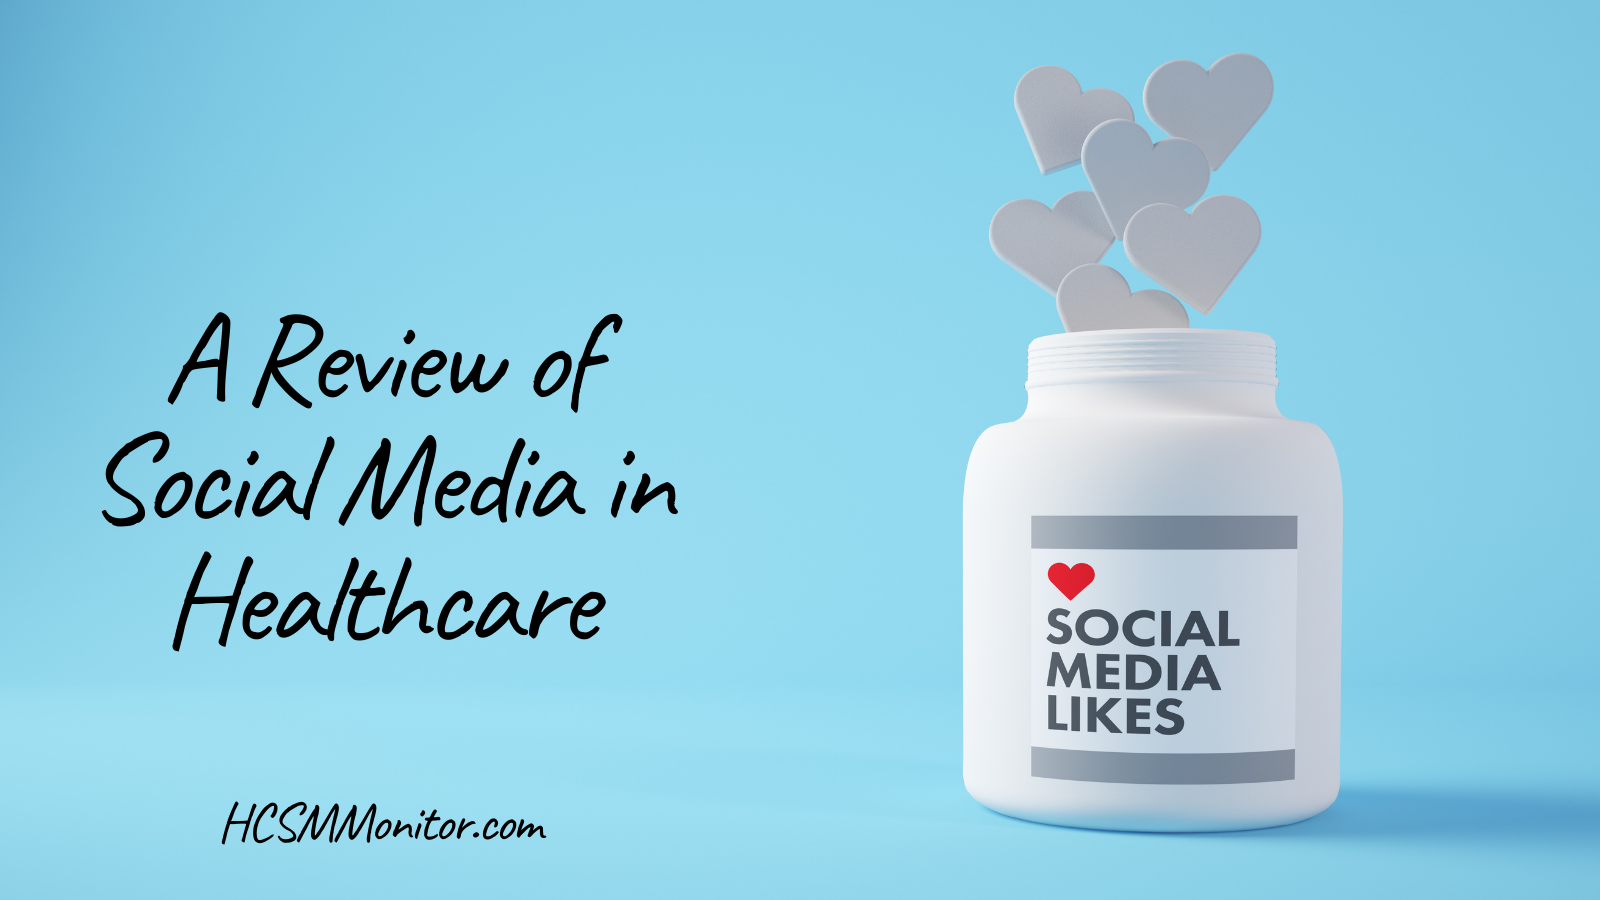 A Literature Review of Social Media Use by Health Care Providers